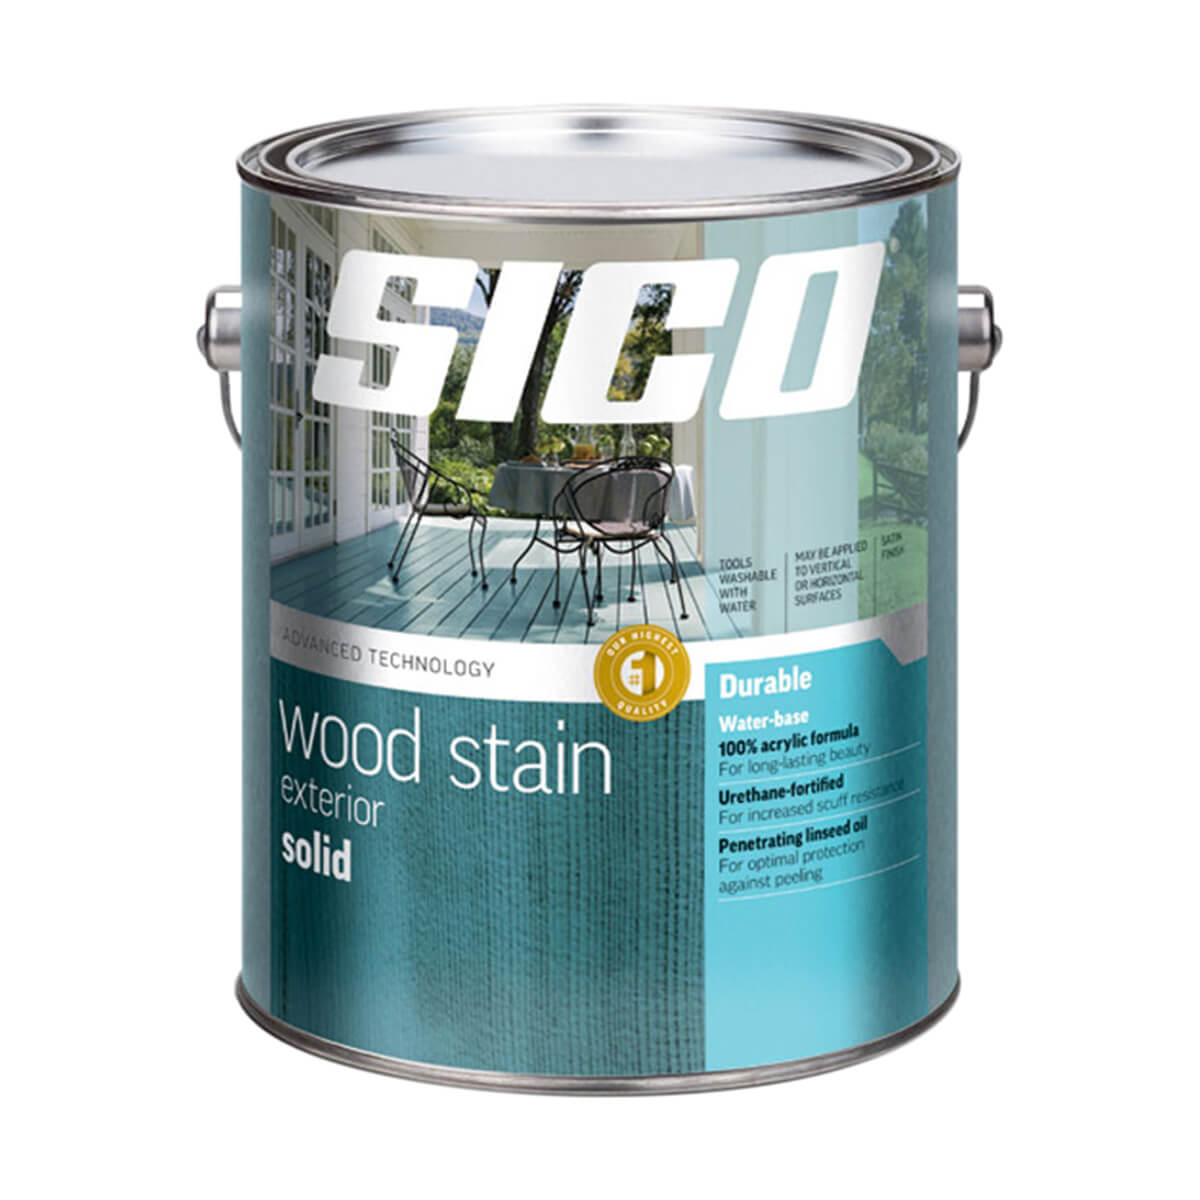 Sico Solid Exterior Stain Neutral Base 232-503 - 3.5 L